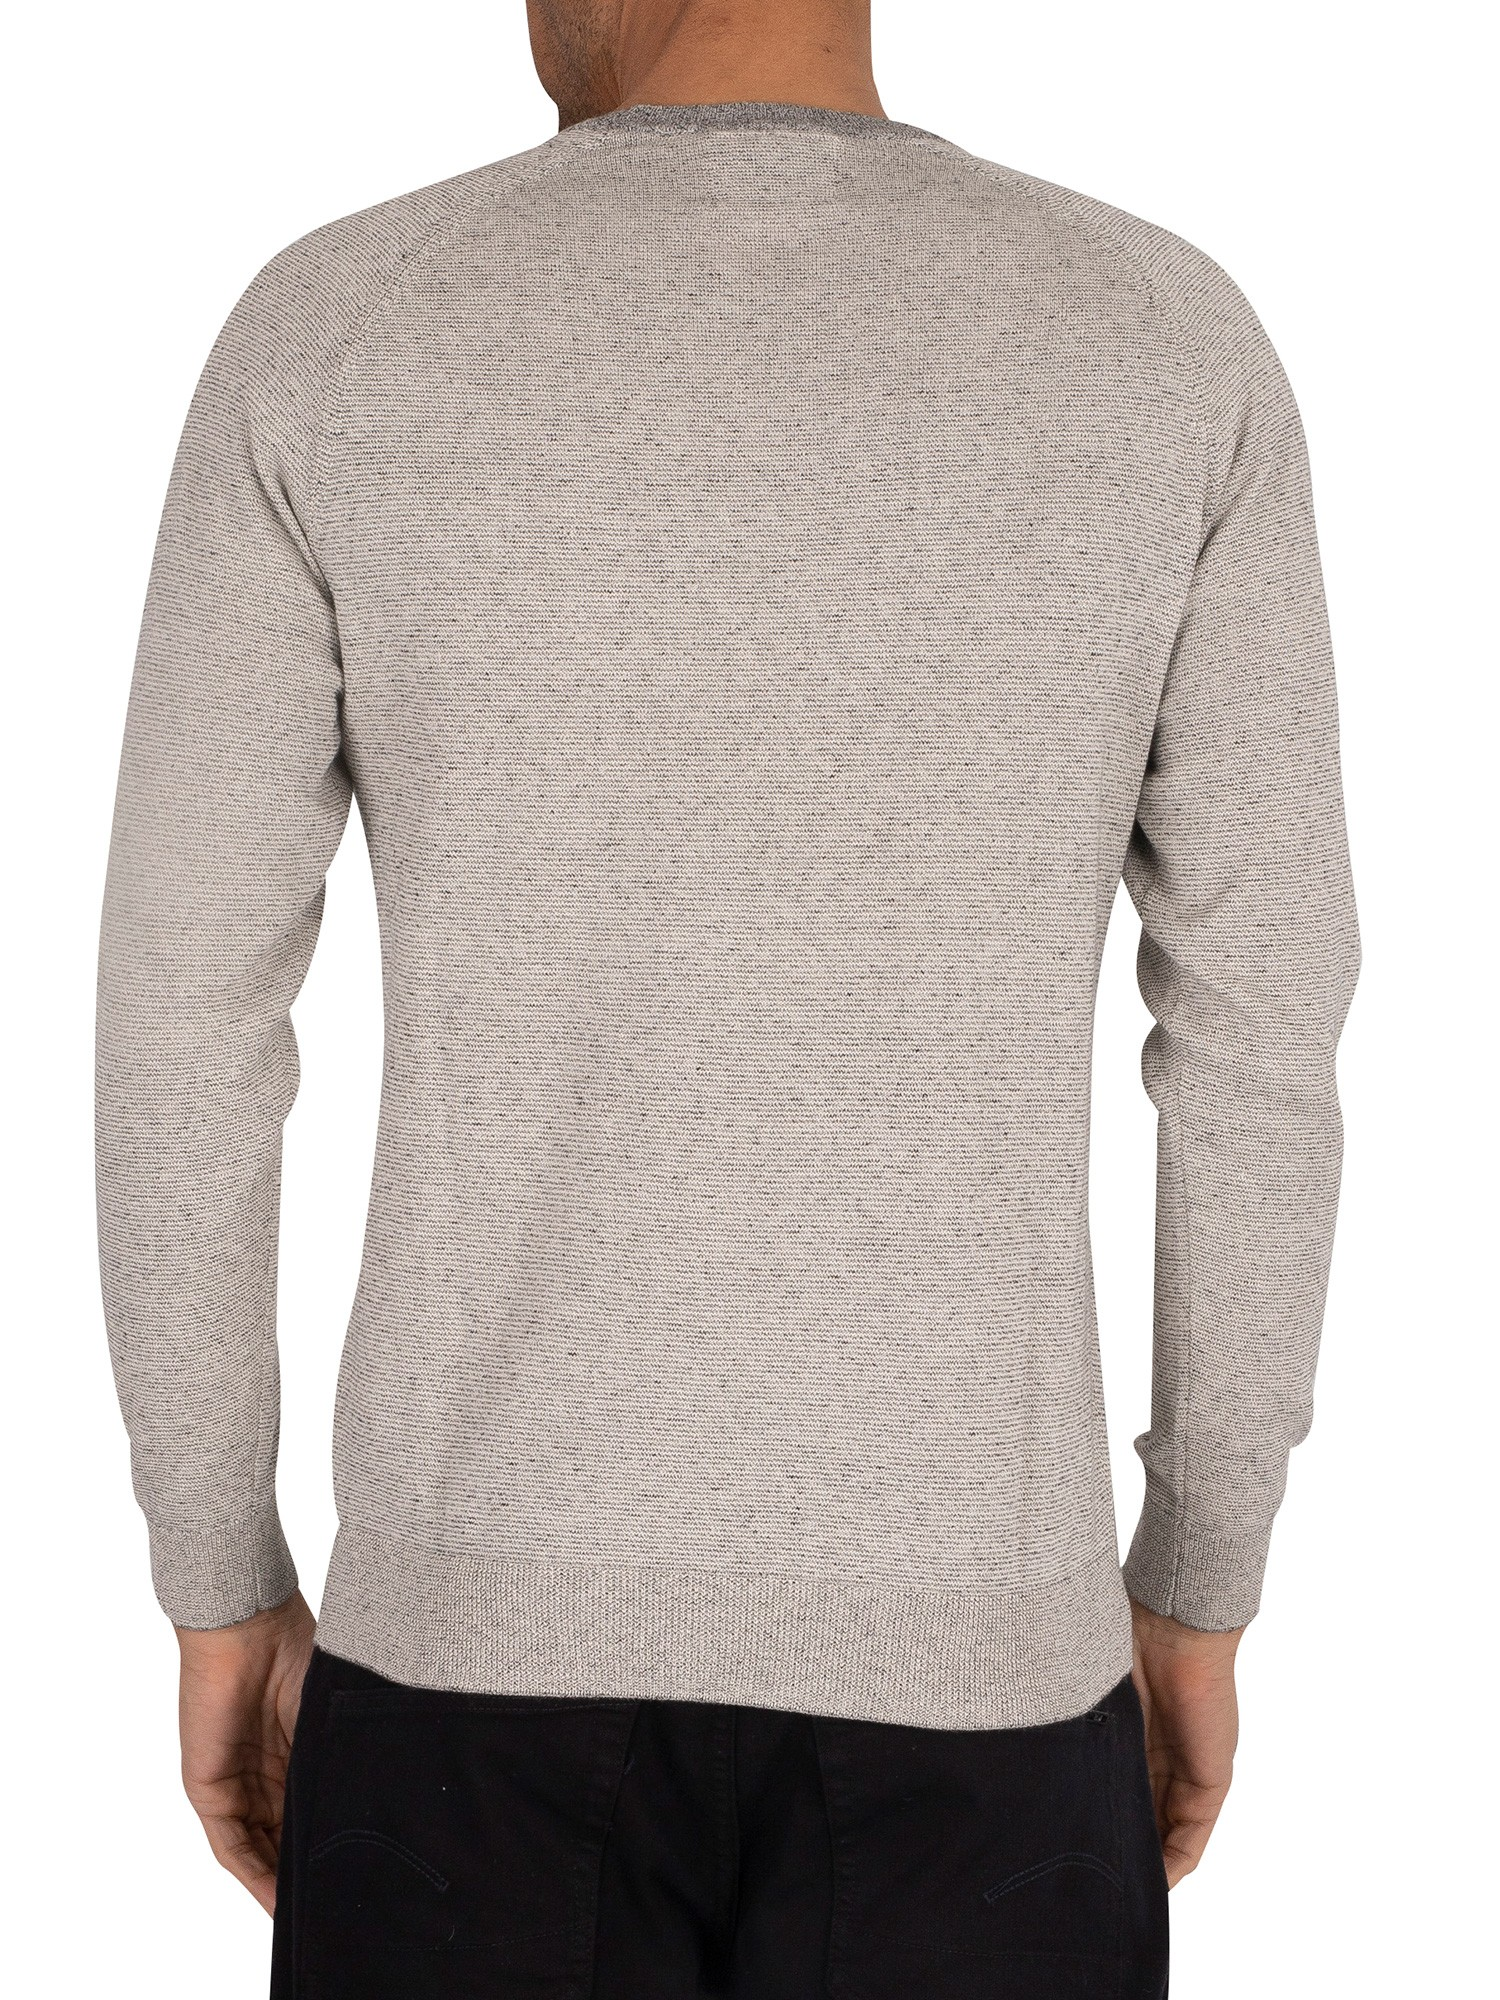 Superdry Orange Label Cotton Knit - Shale Feeder